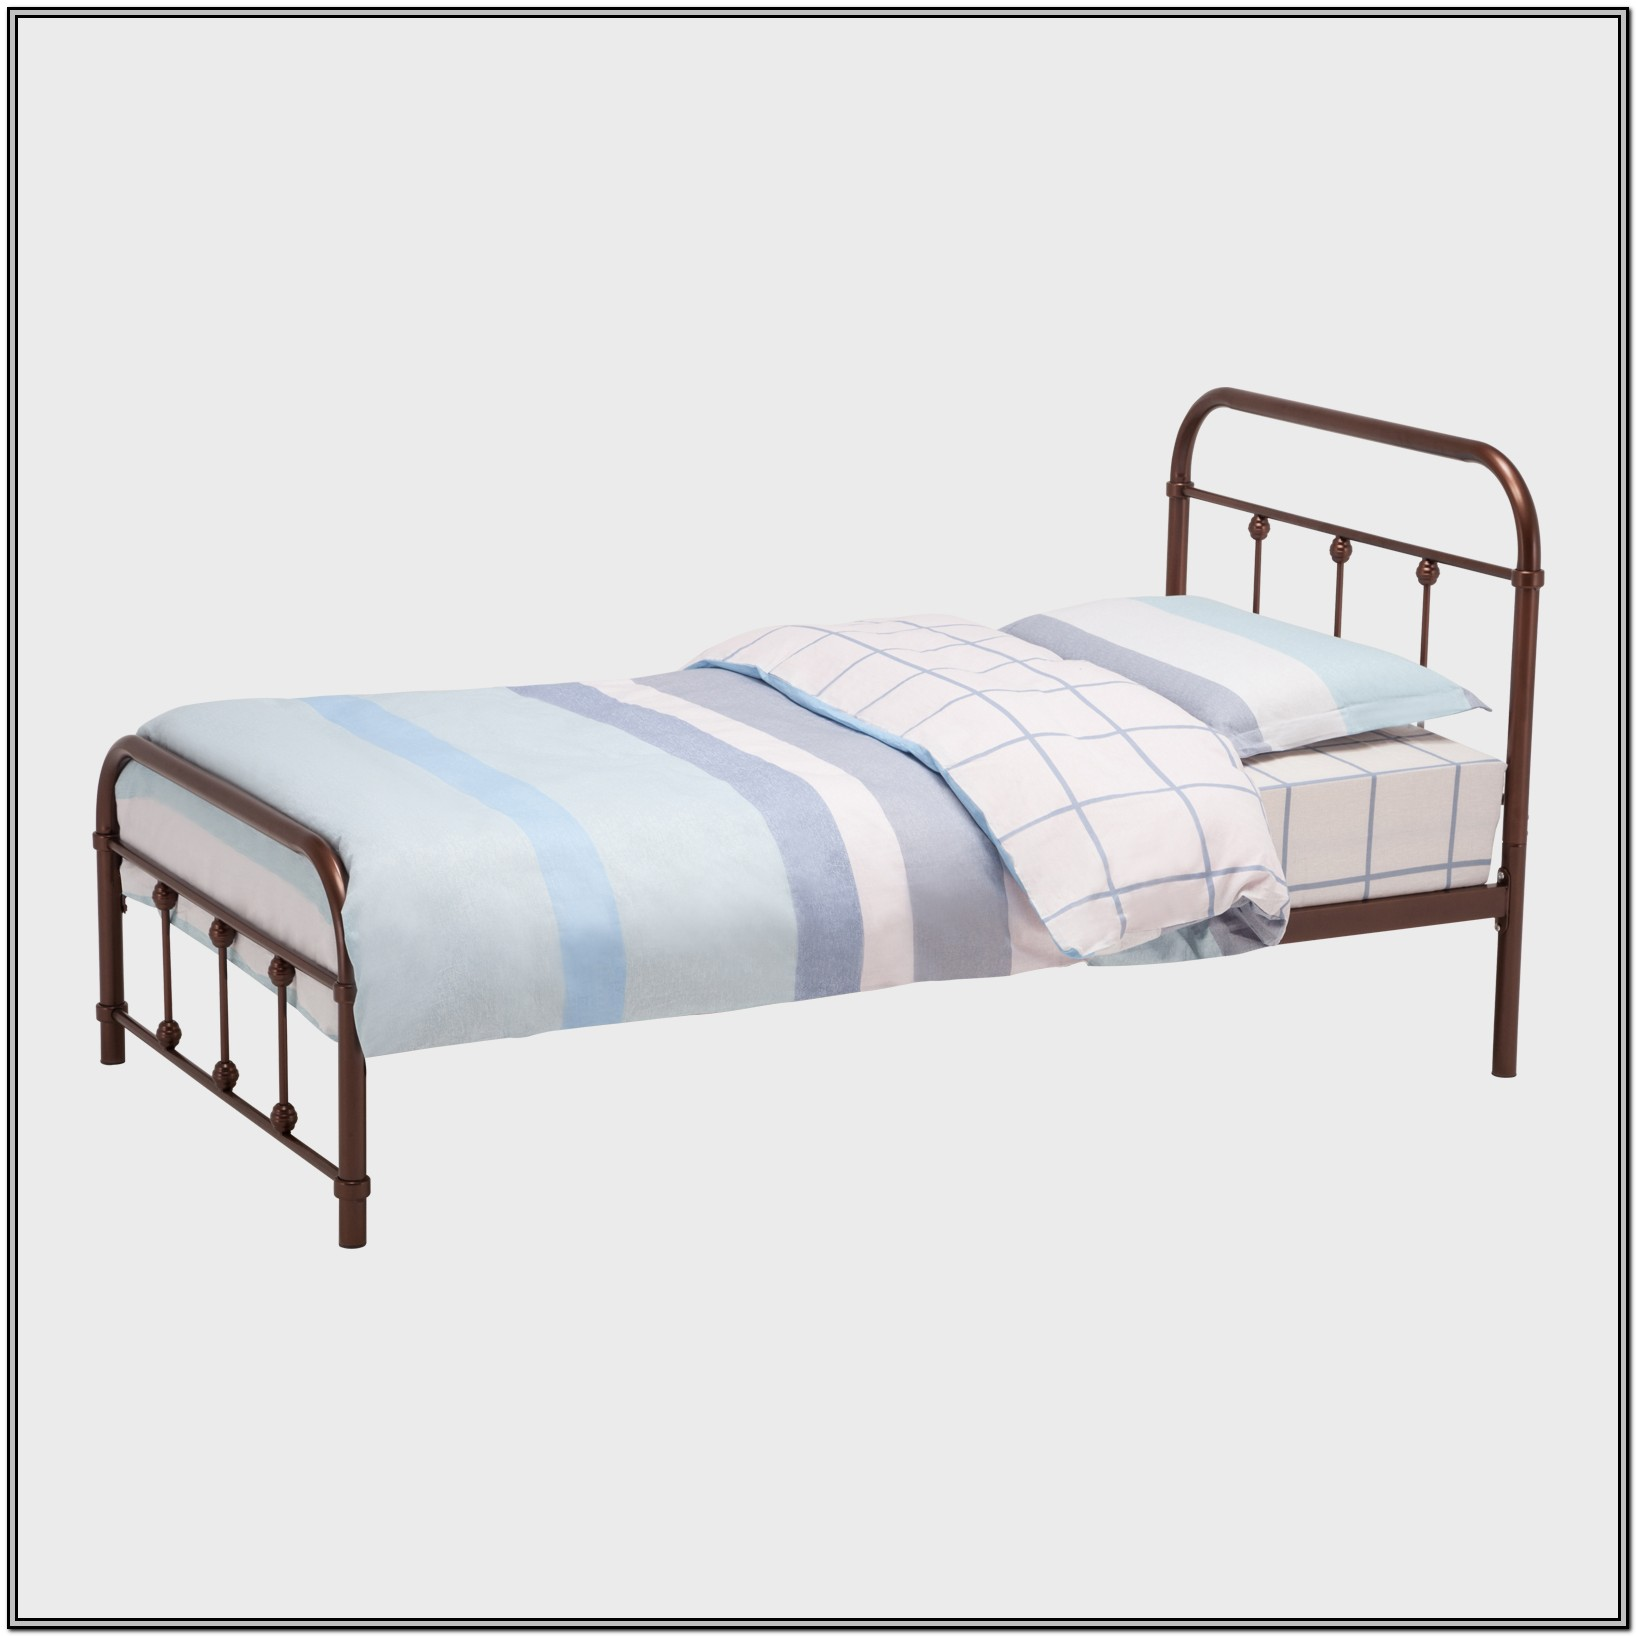 Bed Frames With Headboard Full Size